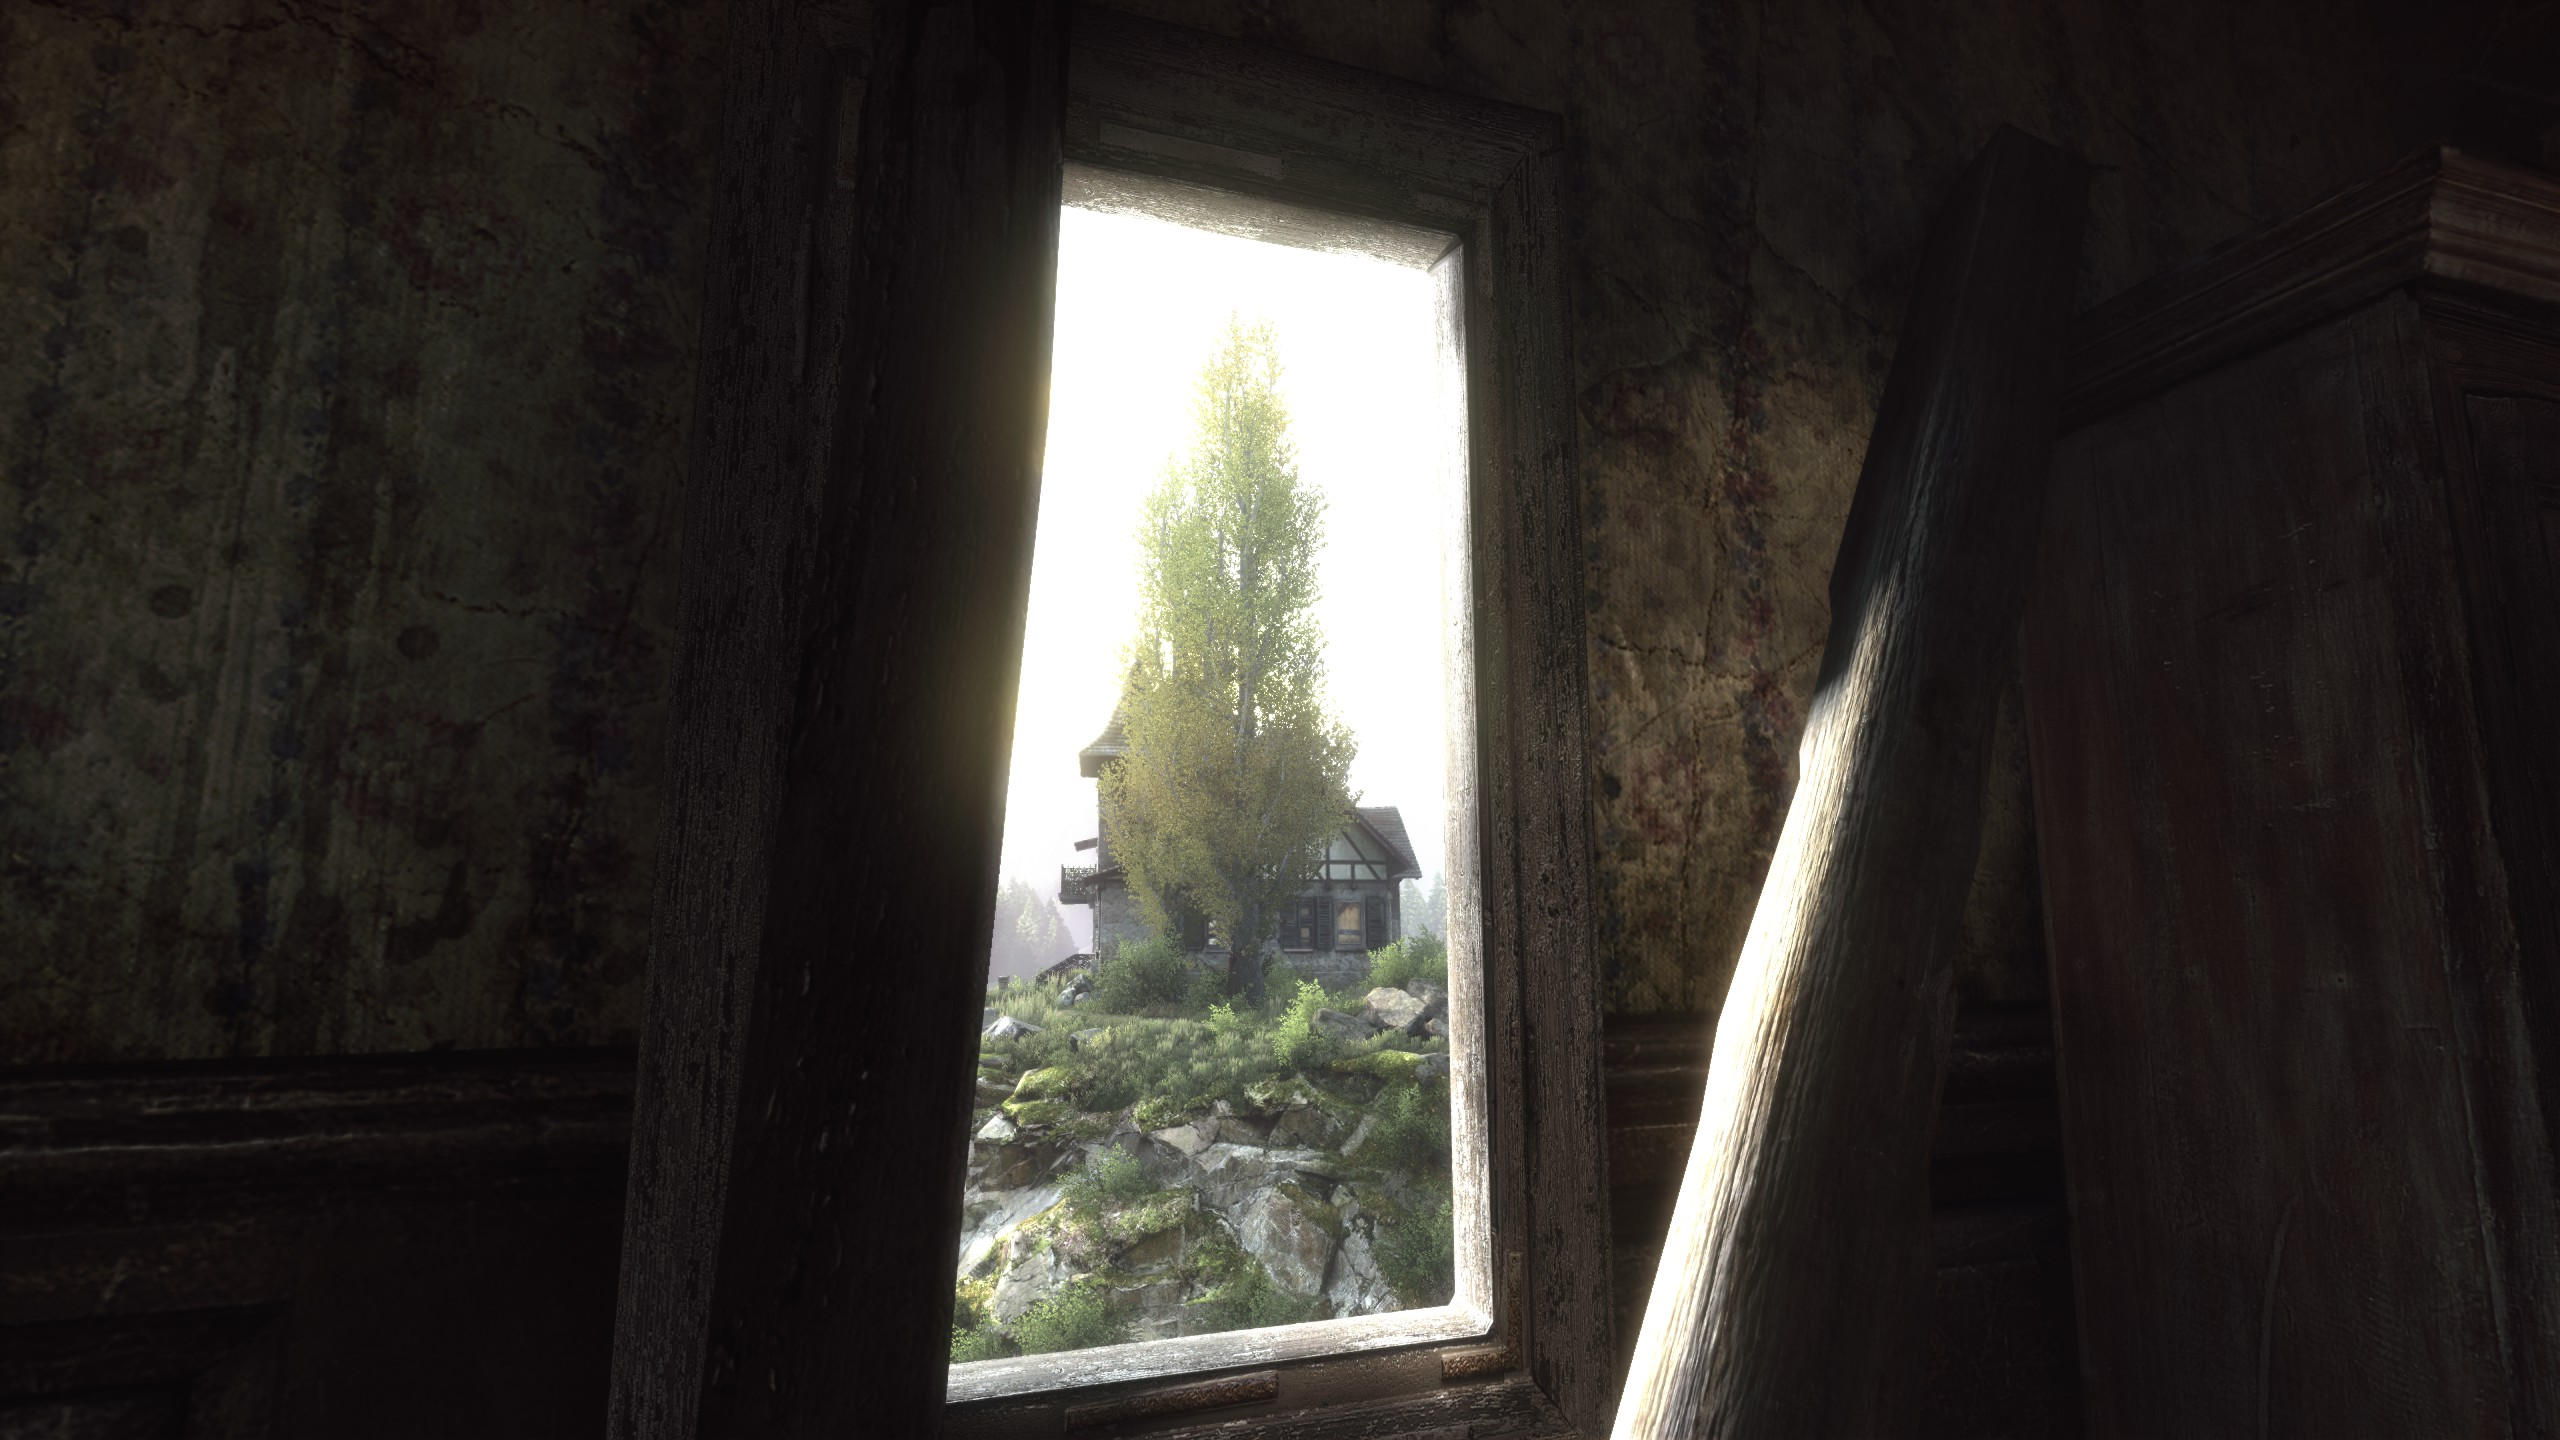 2015-06-19_00003.jpg - Vanishing of Ethan Carter, the